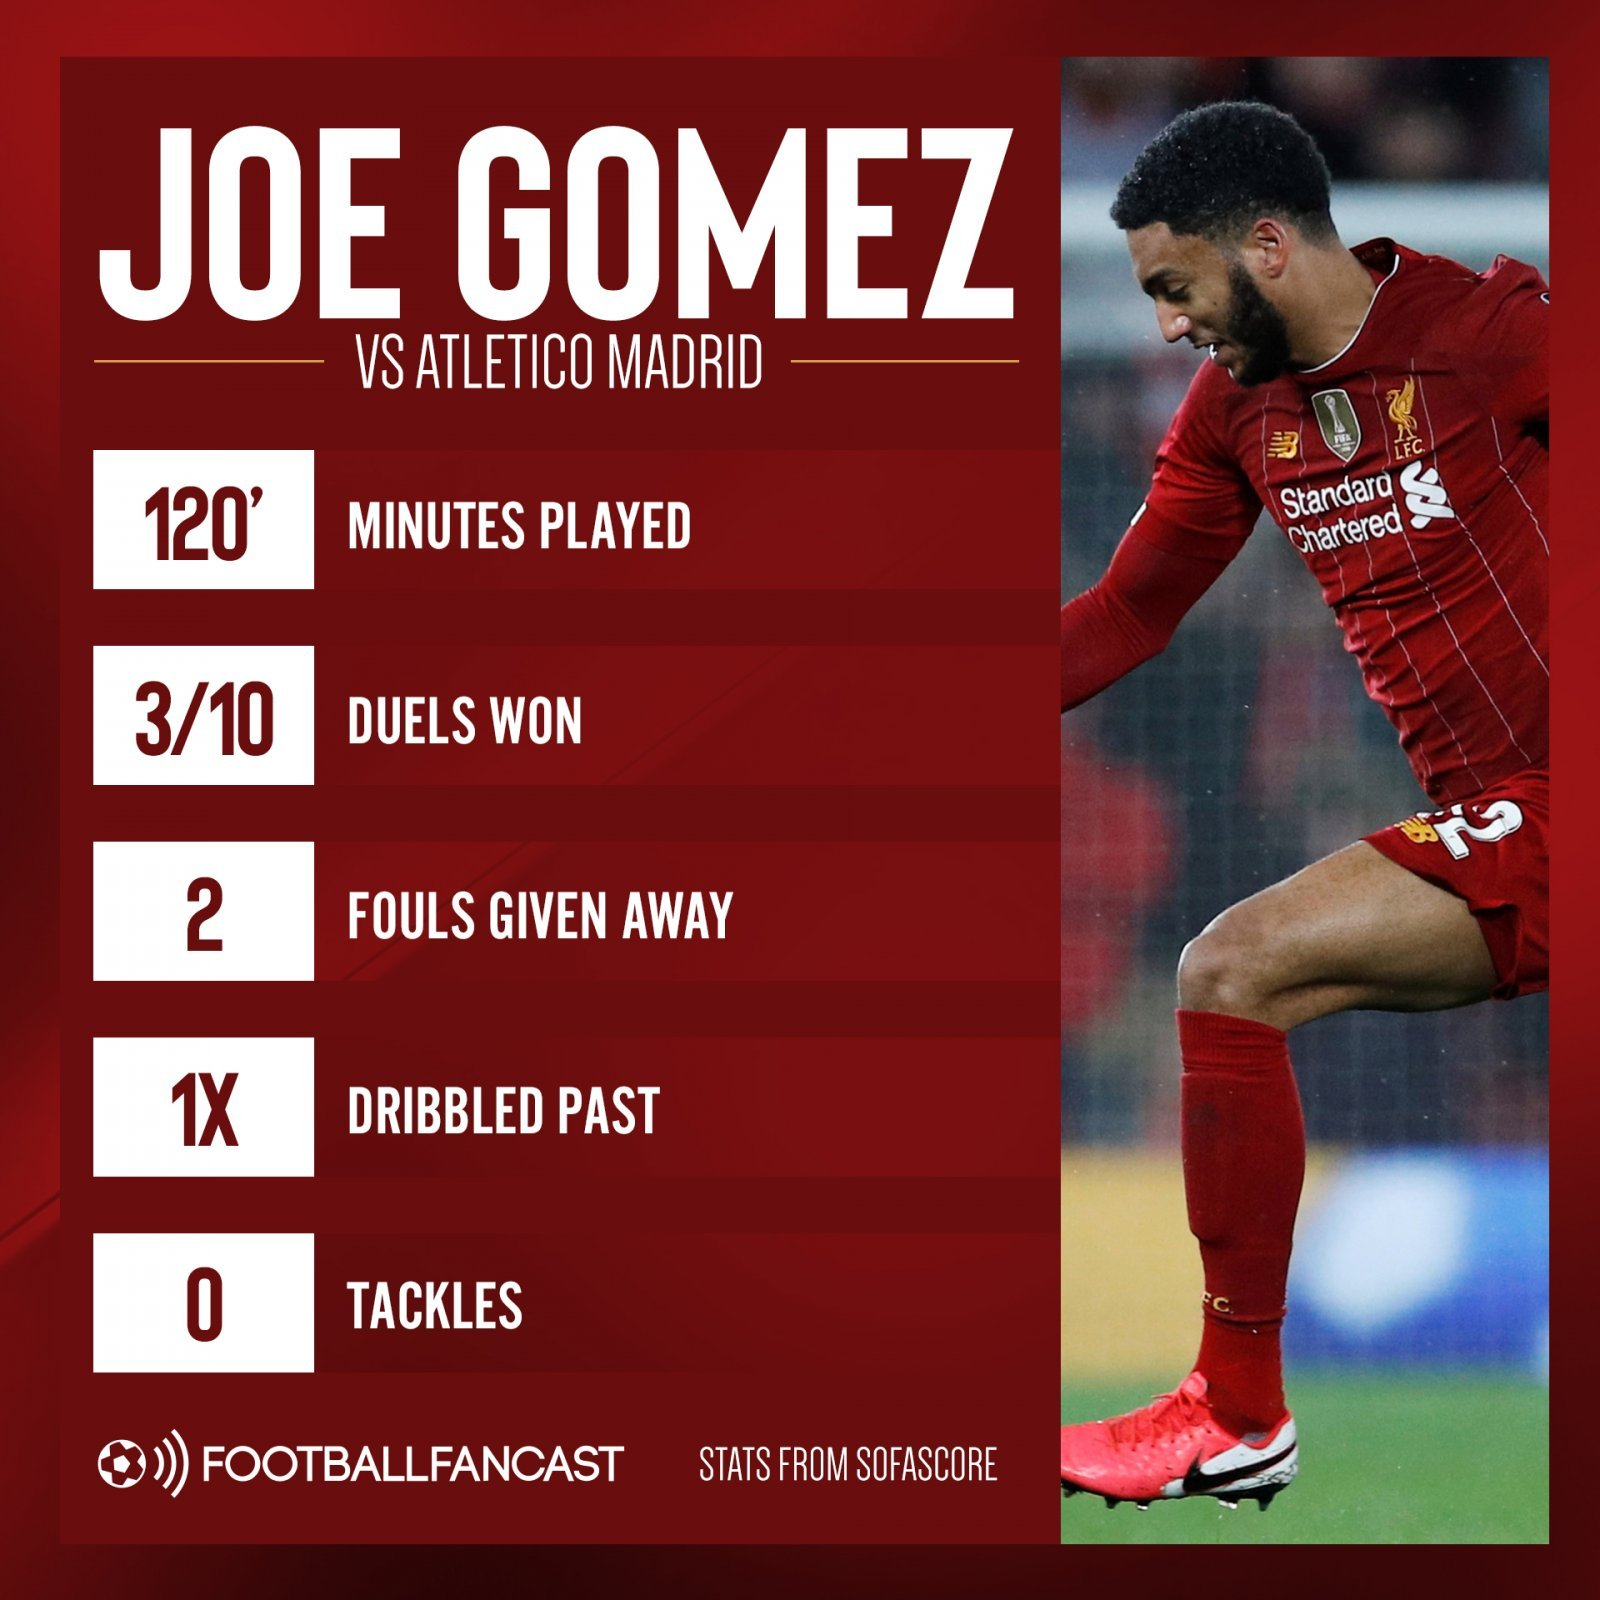 Joe Gomez vs Atletico - Forget Adrian: £37.8m-valued Liverpool ace still has a lot to learn - opinion